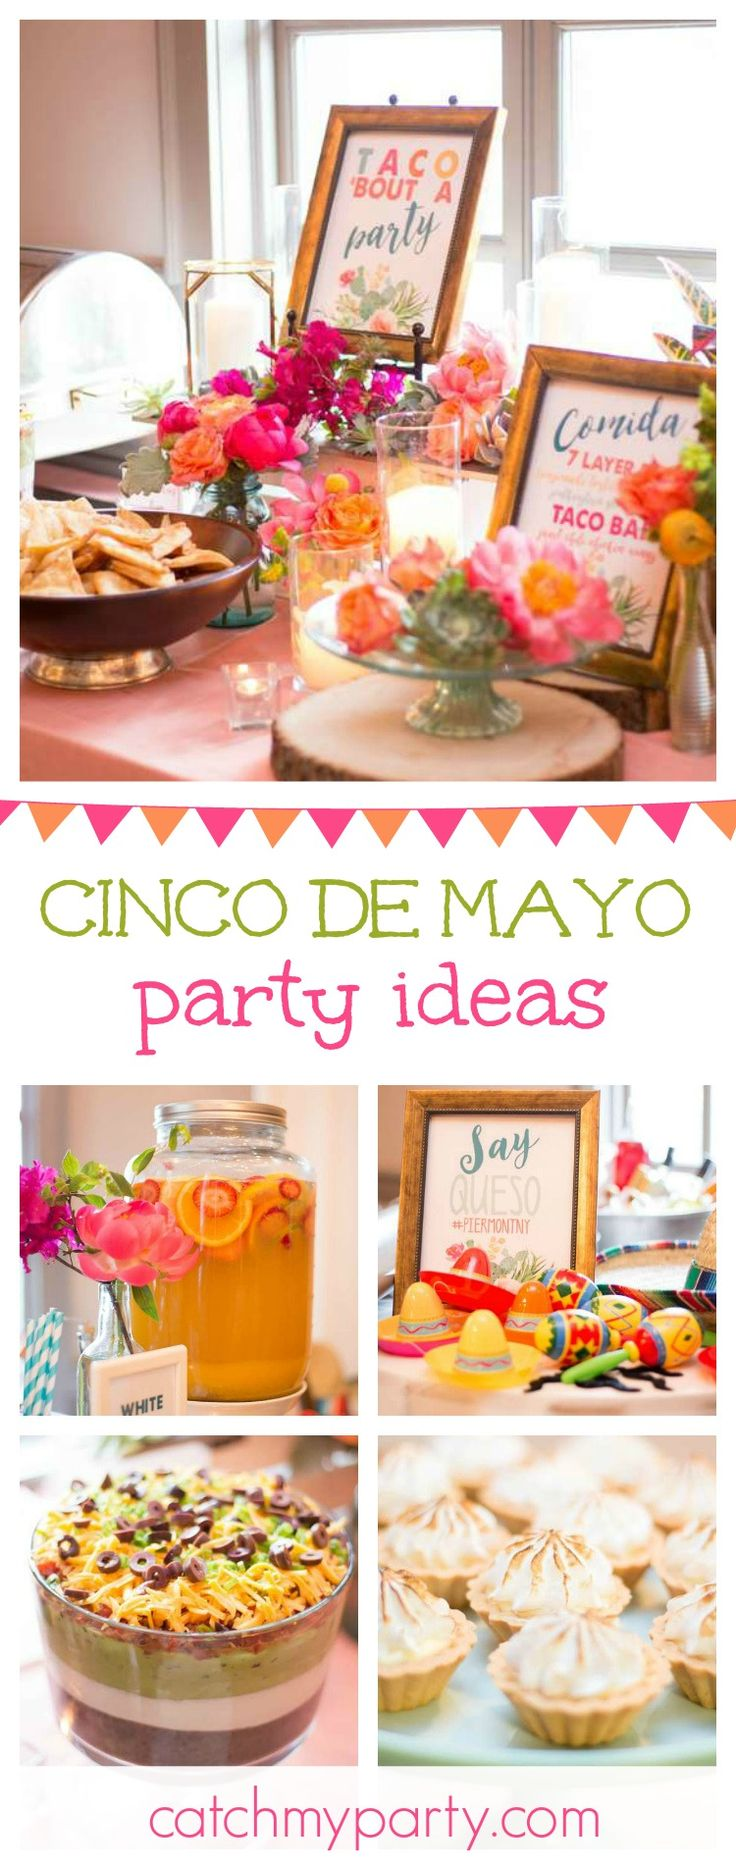 309 best fiesta party ideas images on pinterest sombreros anniversary surprise and blue prints - Cinco de mayo party decoration ideas ...